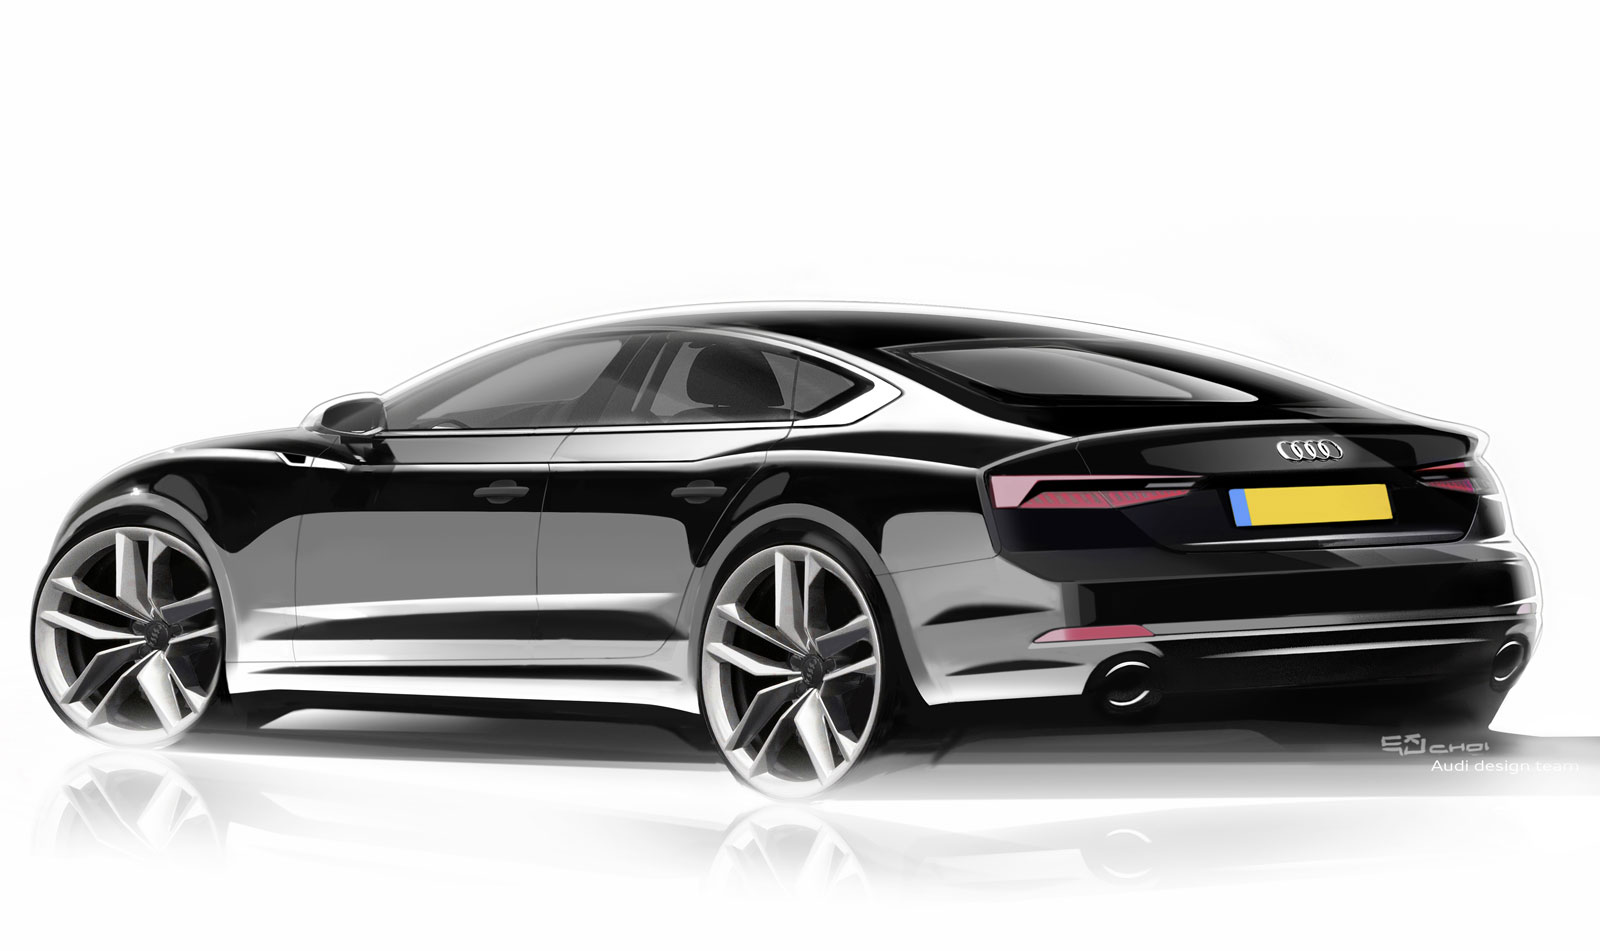 Audi A5 Sportback Design Sketch Render Car Body Design